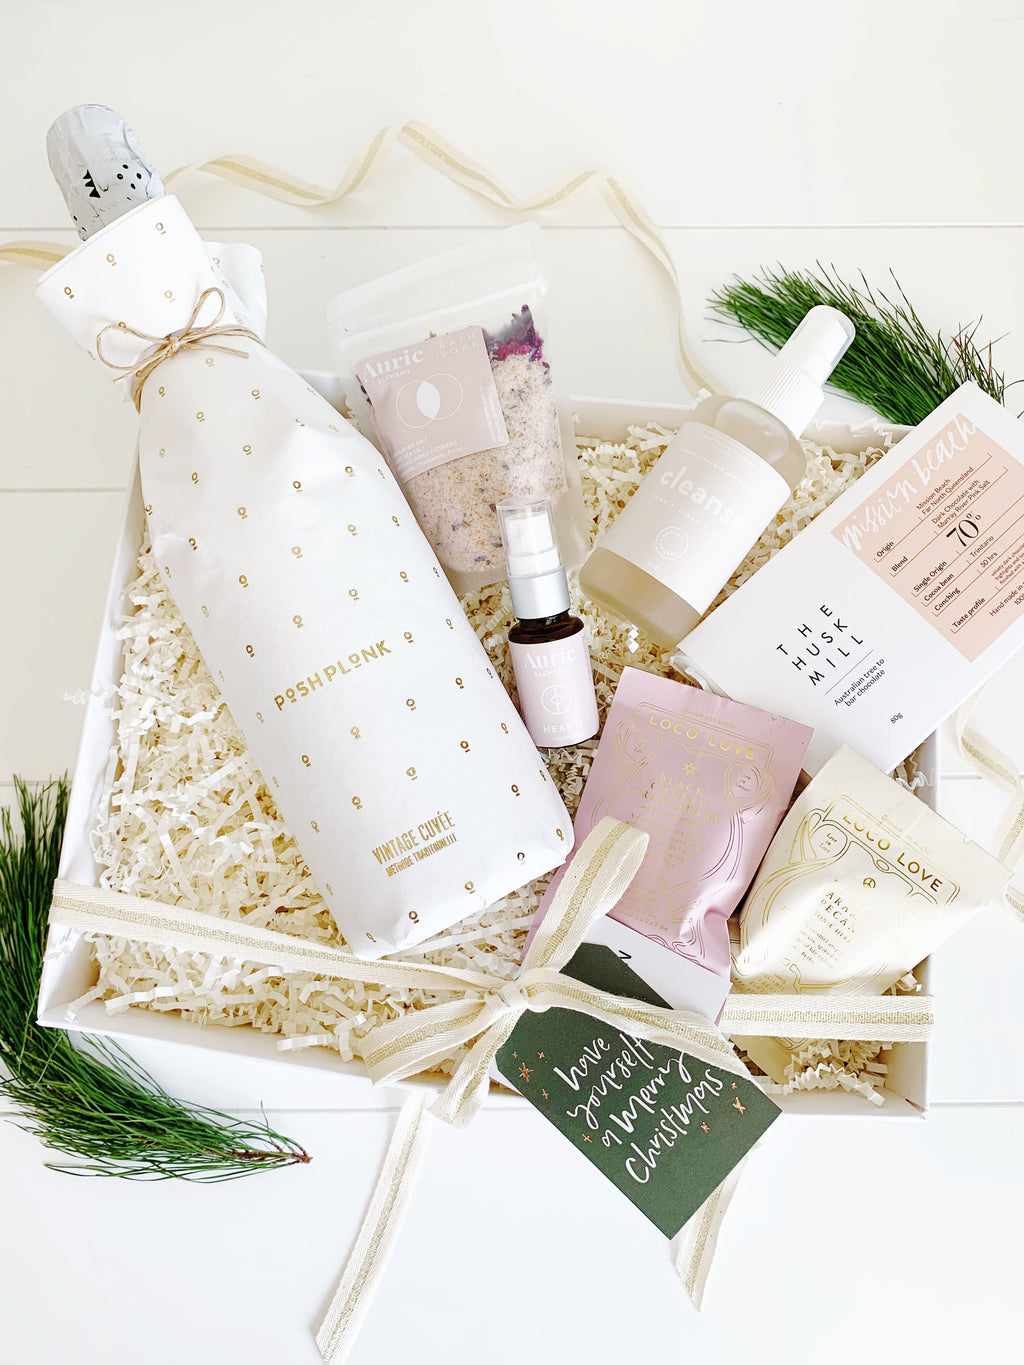 Original Christmas Gift Boxes - White Christmas